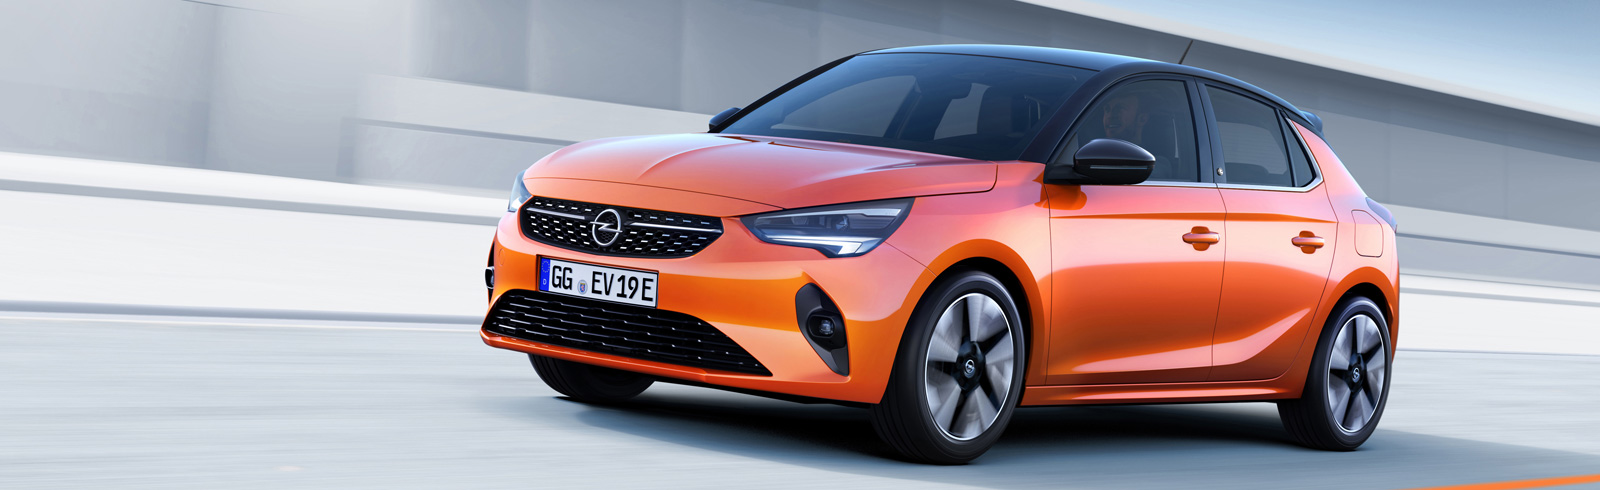 Opel enters the electric car market with the 6th gen Opel Corsa - the Corsa-e